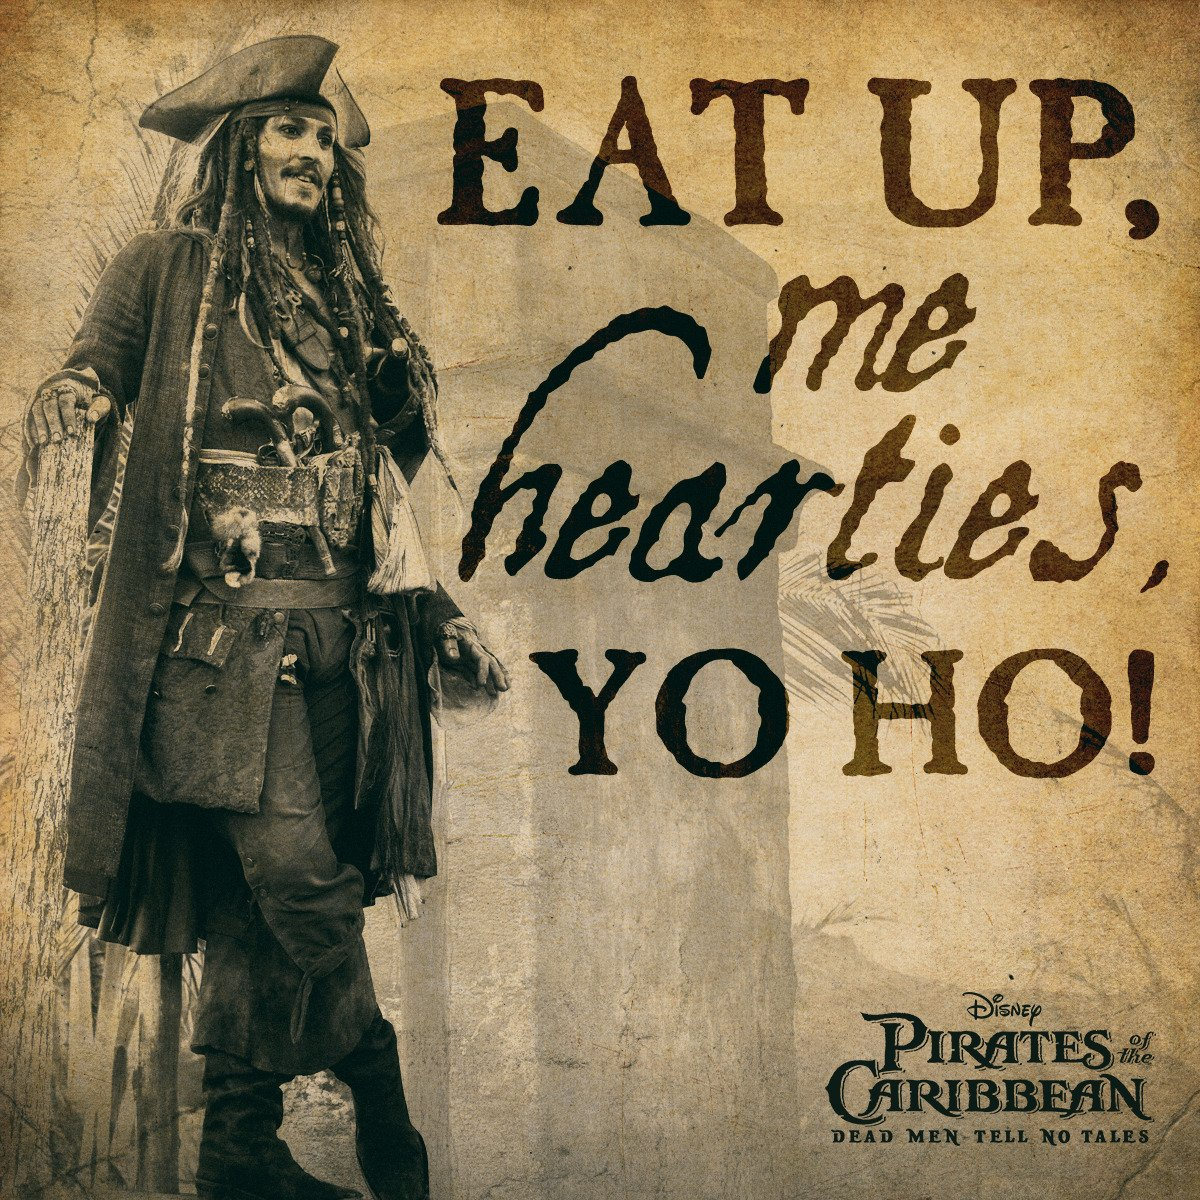 Steer your crew to a hearty Thanksgiving by watching the latest installment of Pirates of the Caribbean now!  http:// pirates.disney.com.convey.pro/l/KAM8bwx  &nbsp;   by #DisneyPirates via @c0nvey<br>http://pic.twitter.com/KOGC3Io9VX